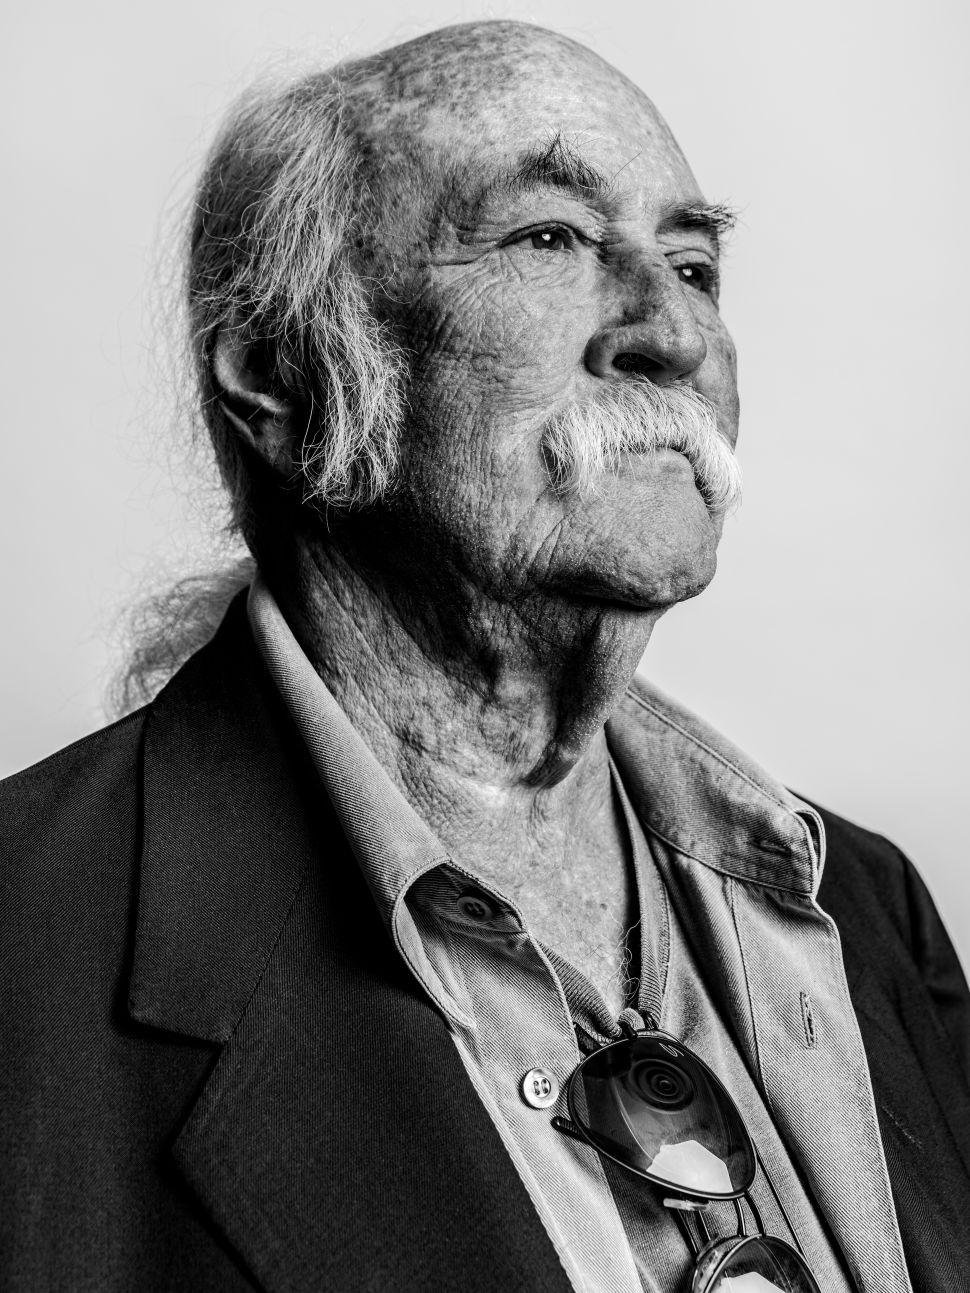 Freed Byrd: David Crosby Reflects on His Career on New Solo Album